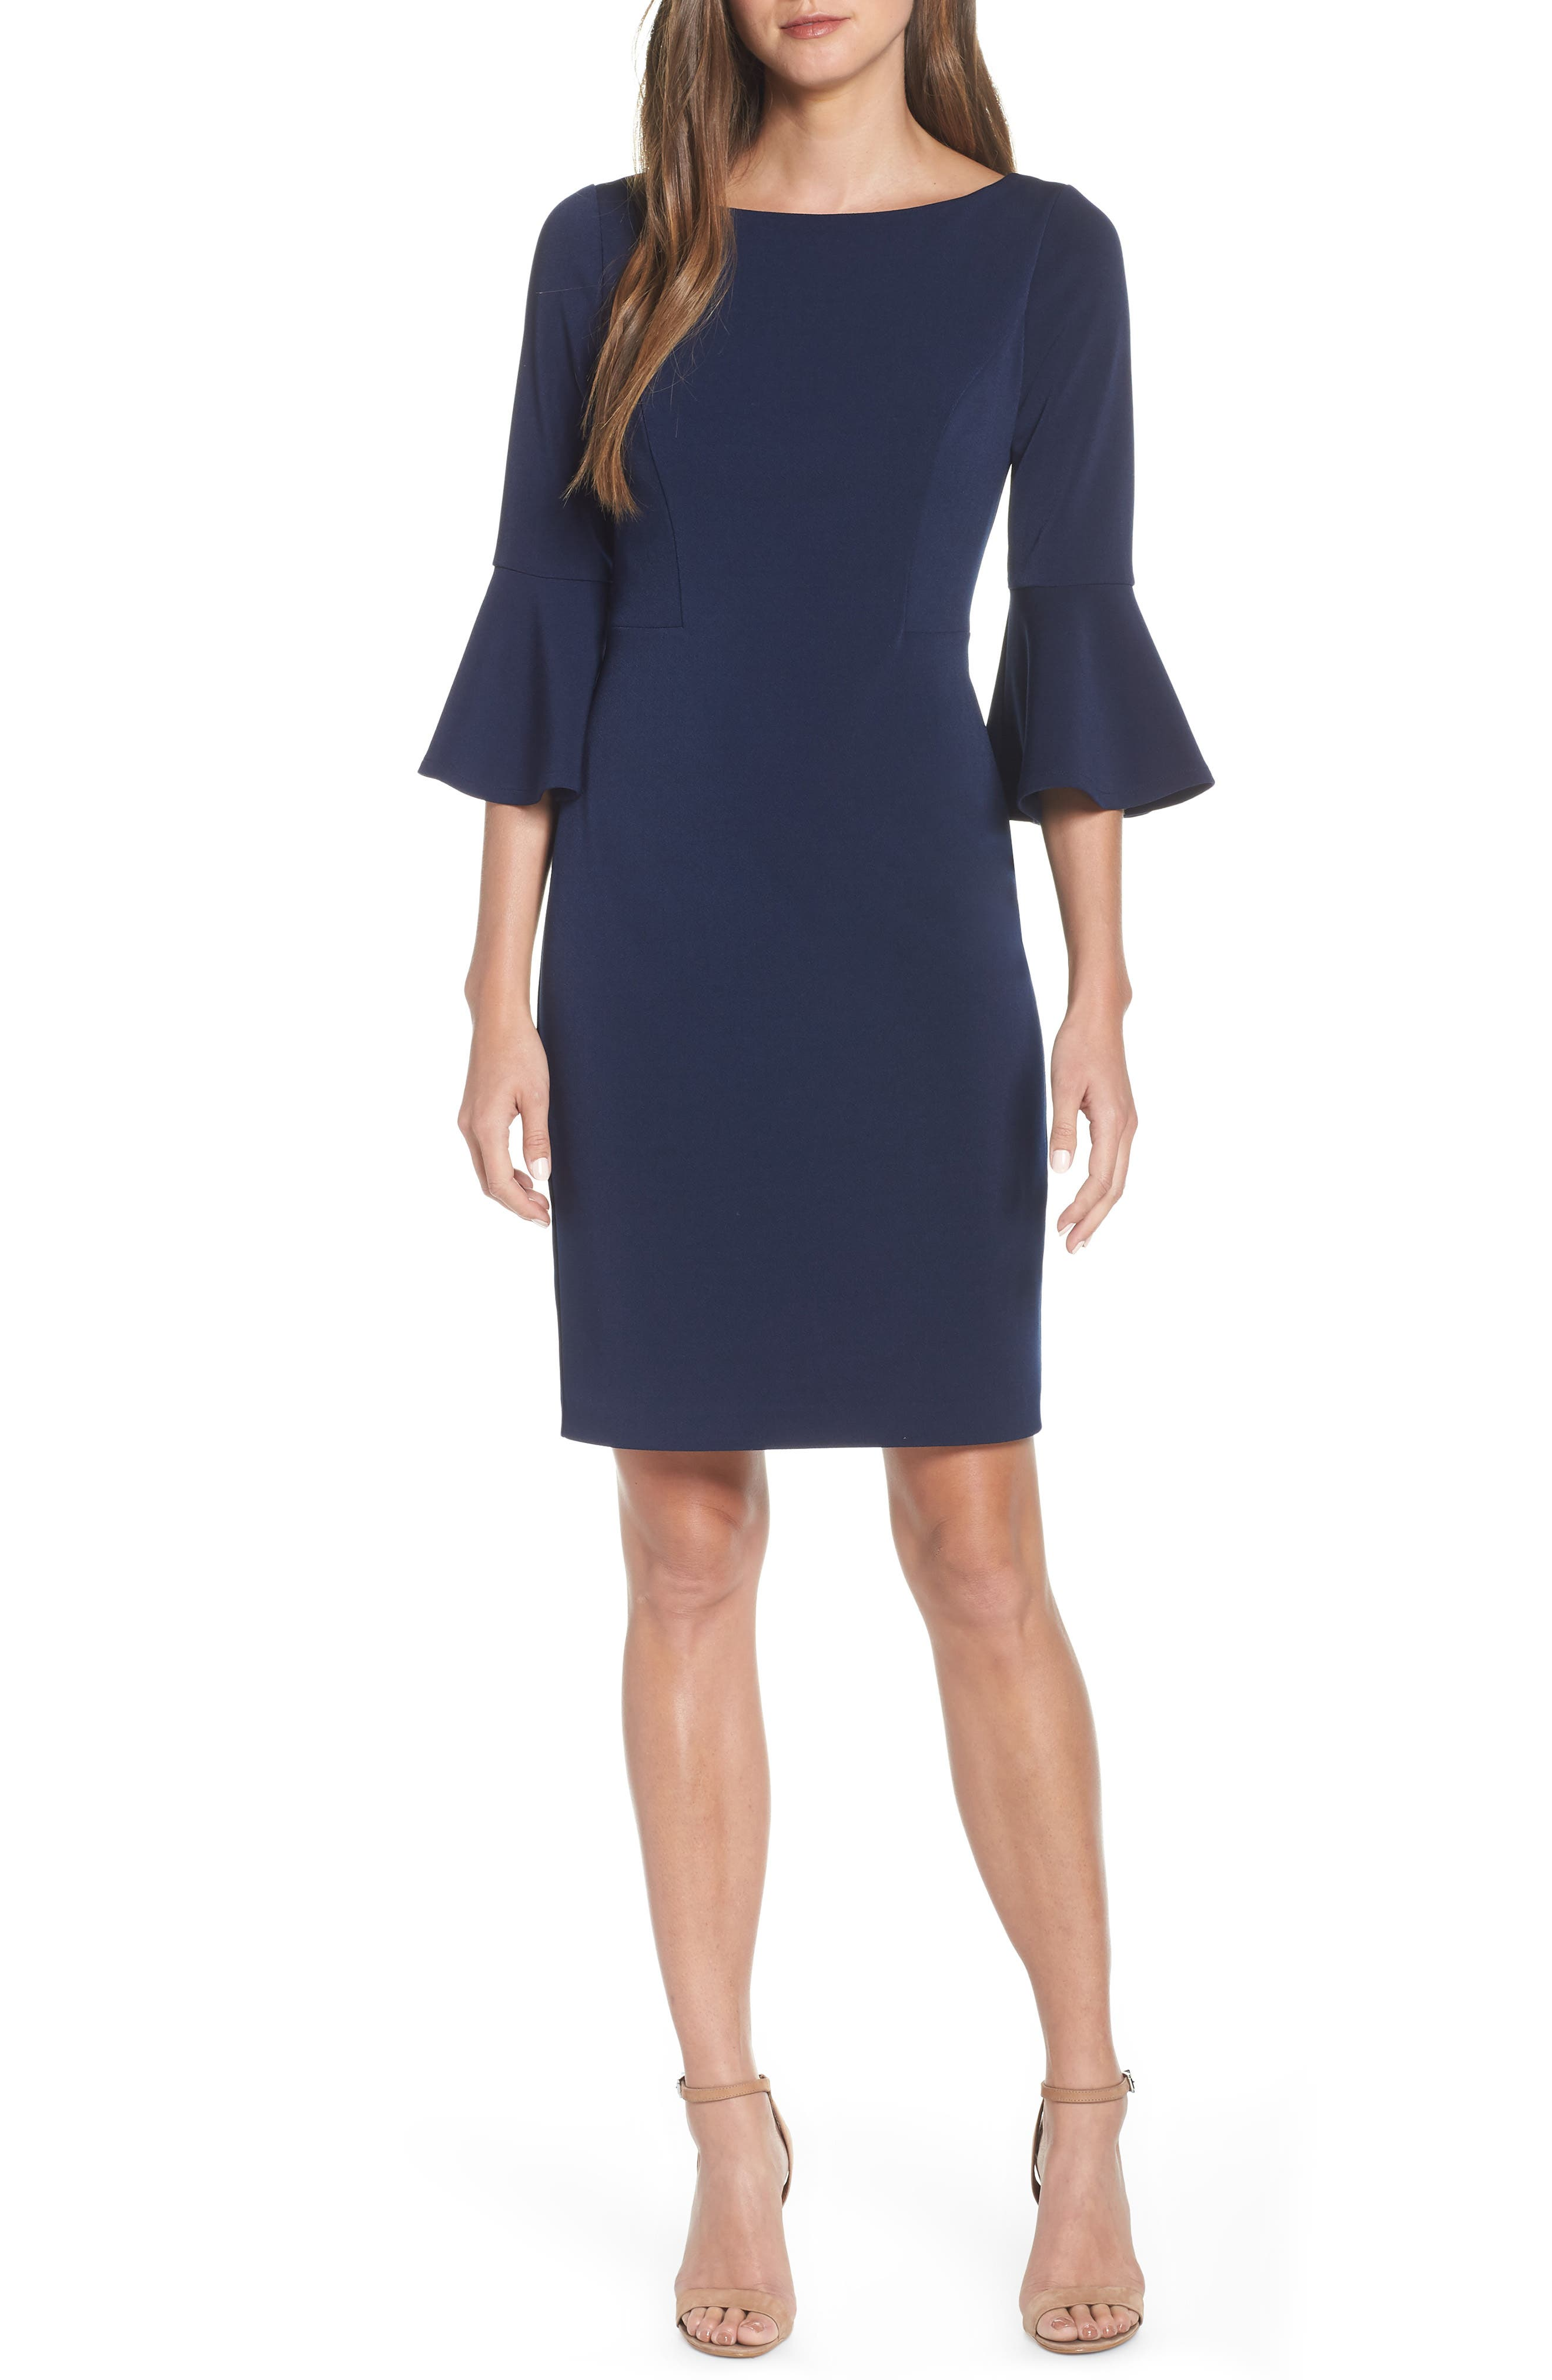 HARPER ROSE Bell Sleeve Bateau Neck Sheath Dress, Main, color, NAVY